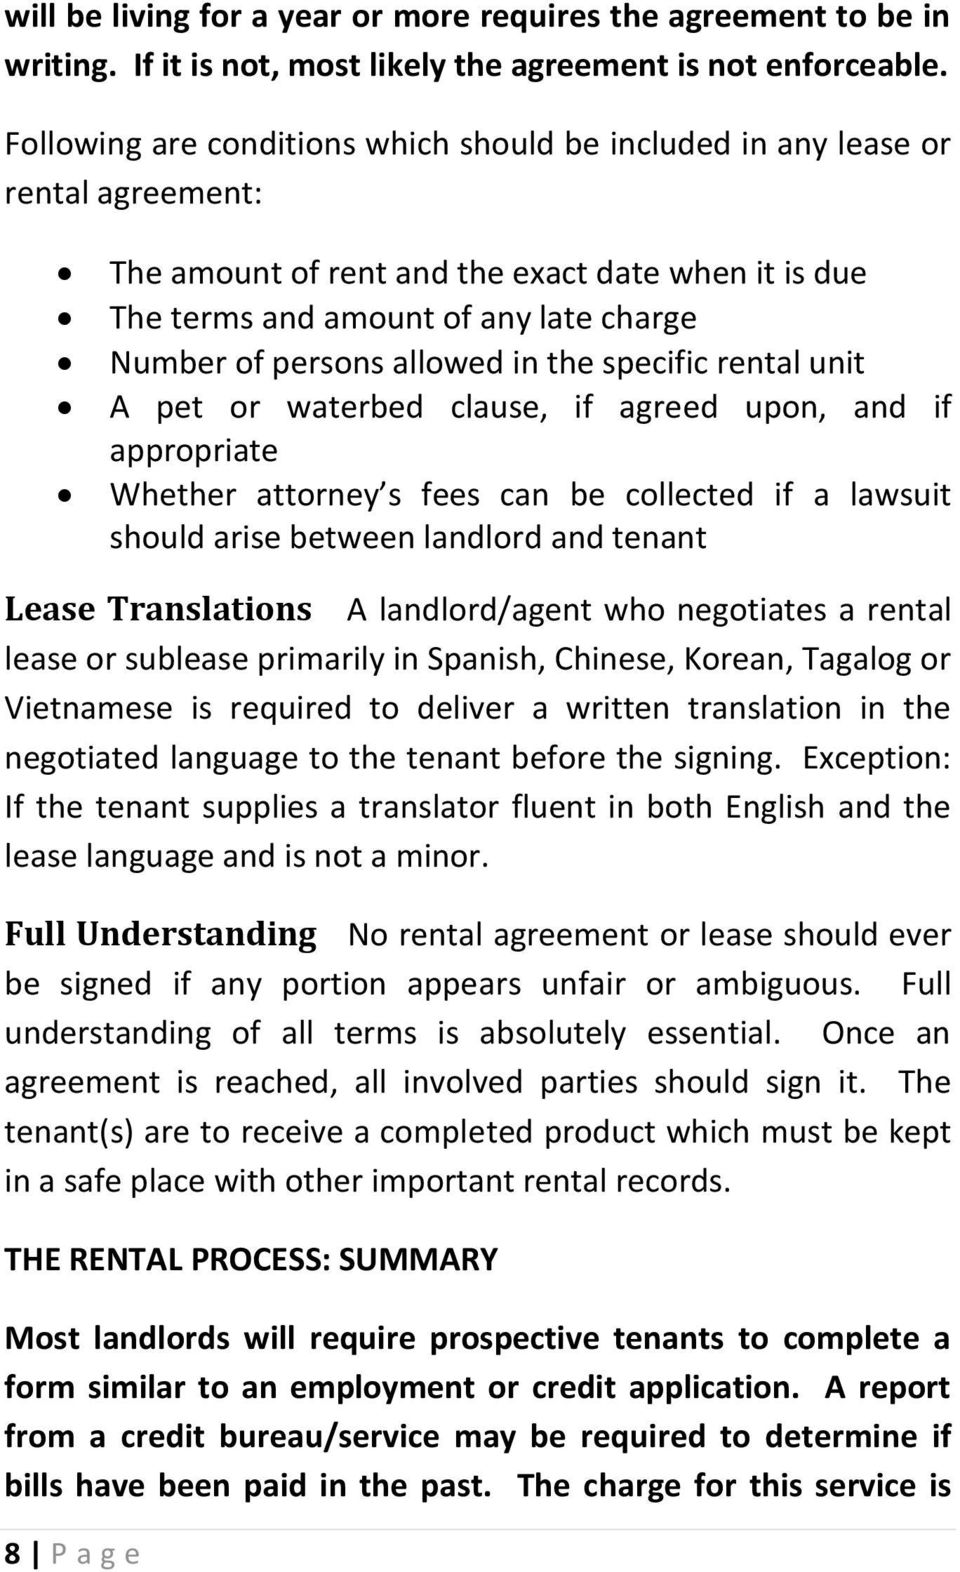 allowed in the specific rental unit A pet or waterbed clause, if agreed upon, and if appropriate Whether attorney s fees can be collected if a lawsuit should arise between landlord and tenant Lease